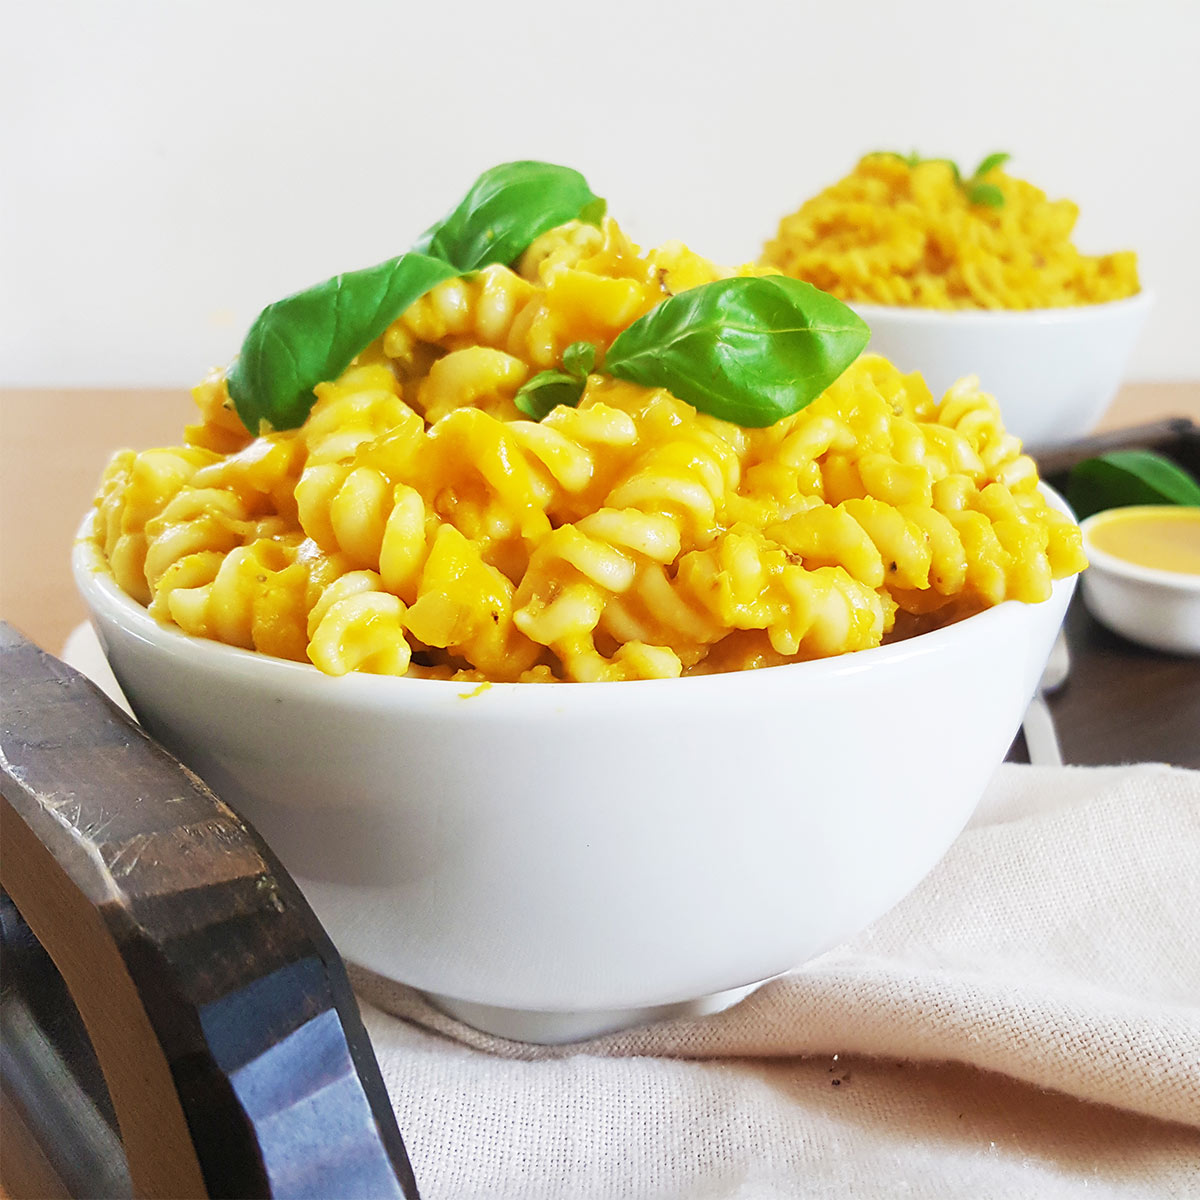 Vegan Pumpkin pasta served in a white bowl, garnished with basil leaves